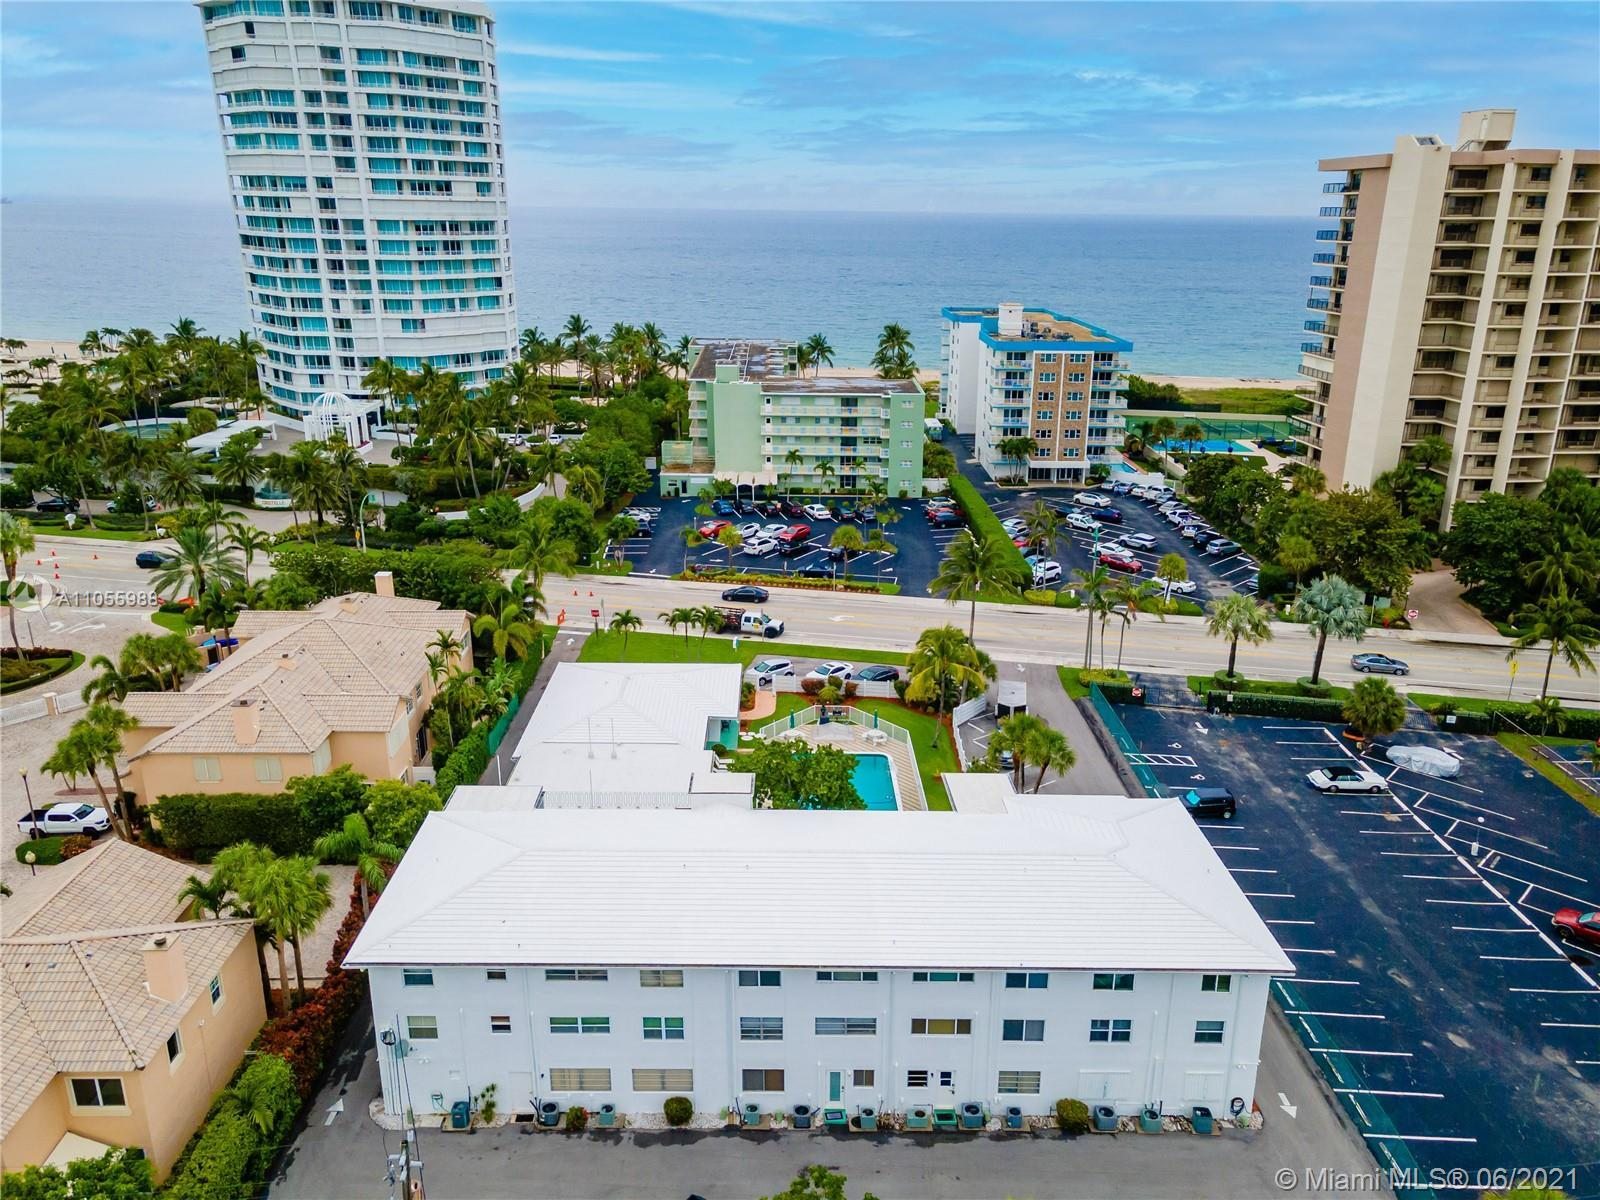 Turn-key fully furnished condo within walking distance of beautiful Lauderdale by the Sea Beach.  Co